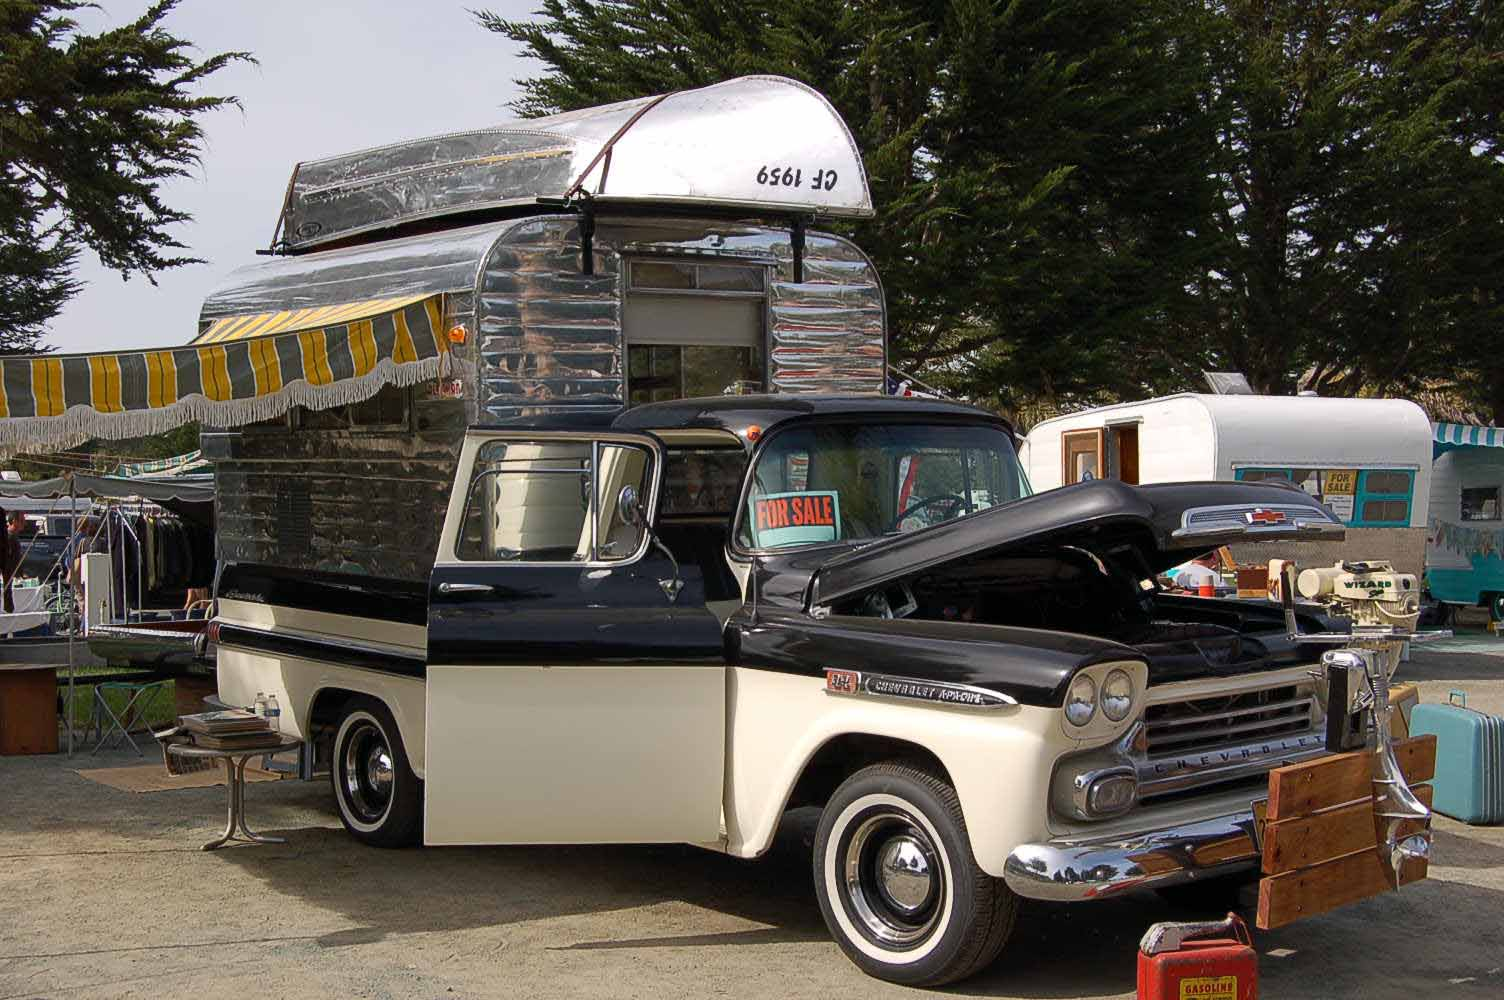 Classic 1959 Chevy Apache Pickup Truck With A Rare Alaskan Expanding Camper Shell And Fishing Boat